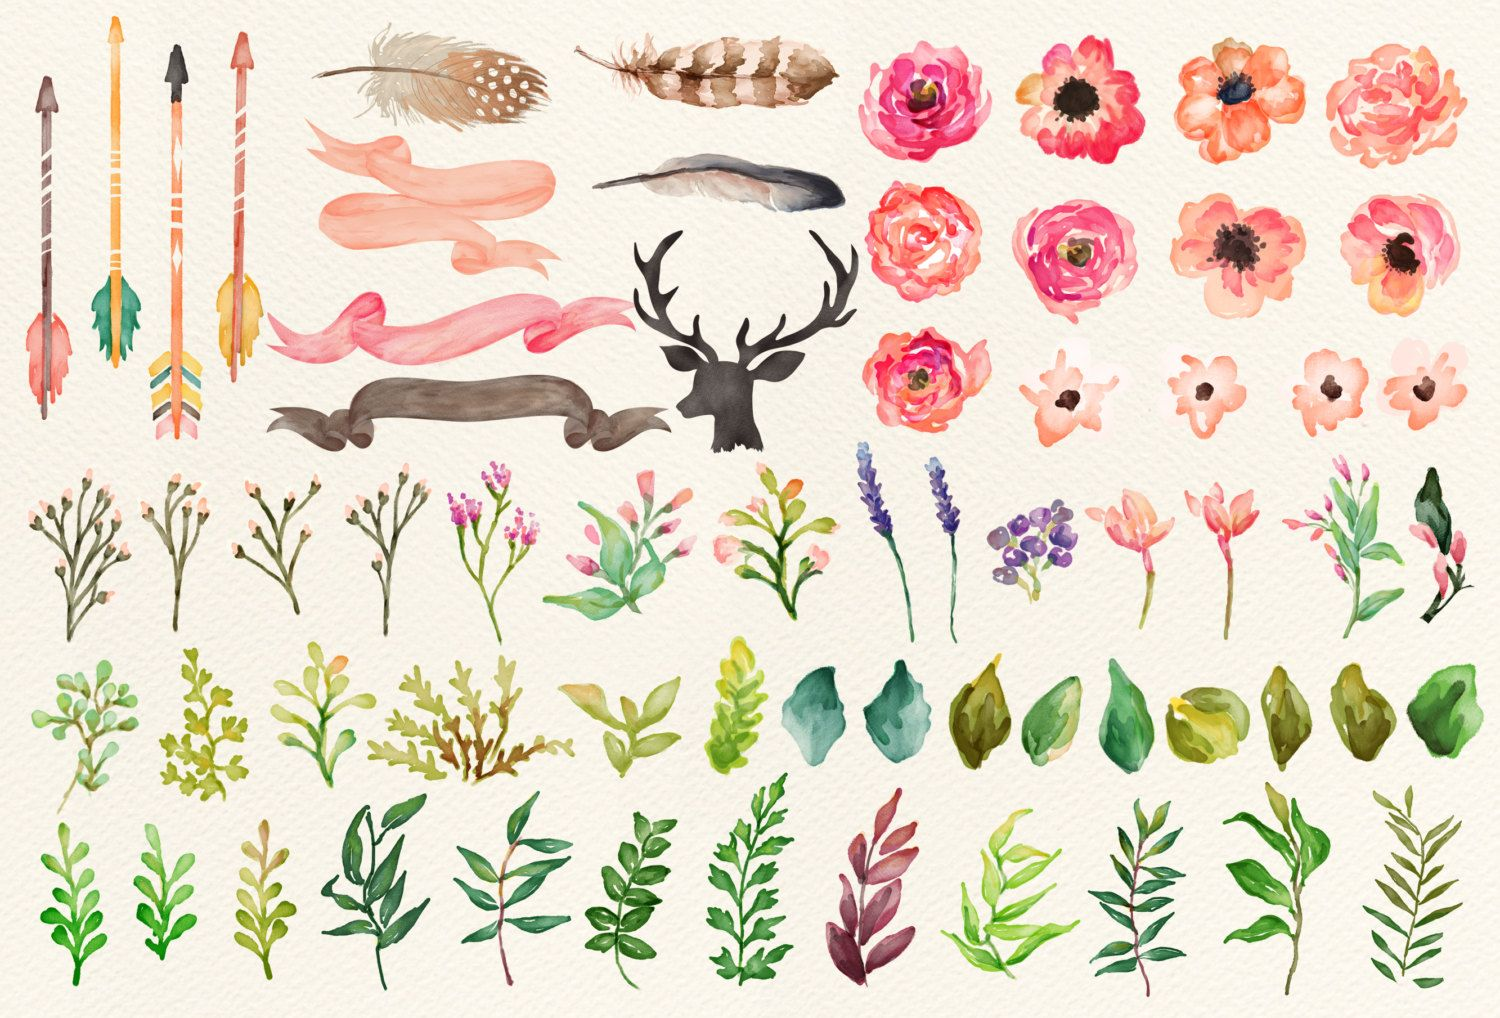 watercolour elements from Graphic Box